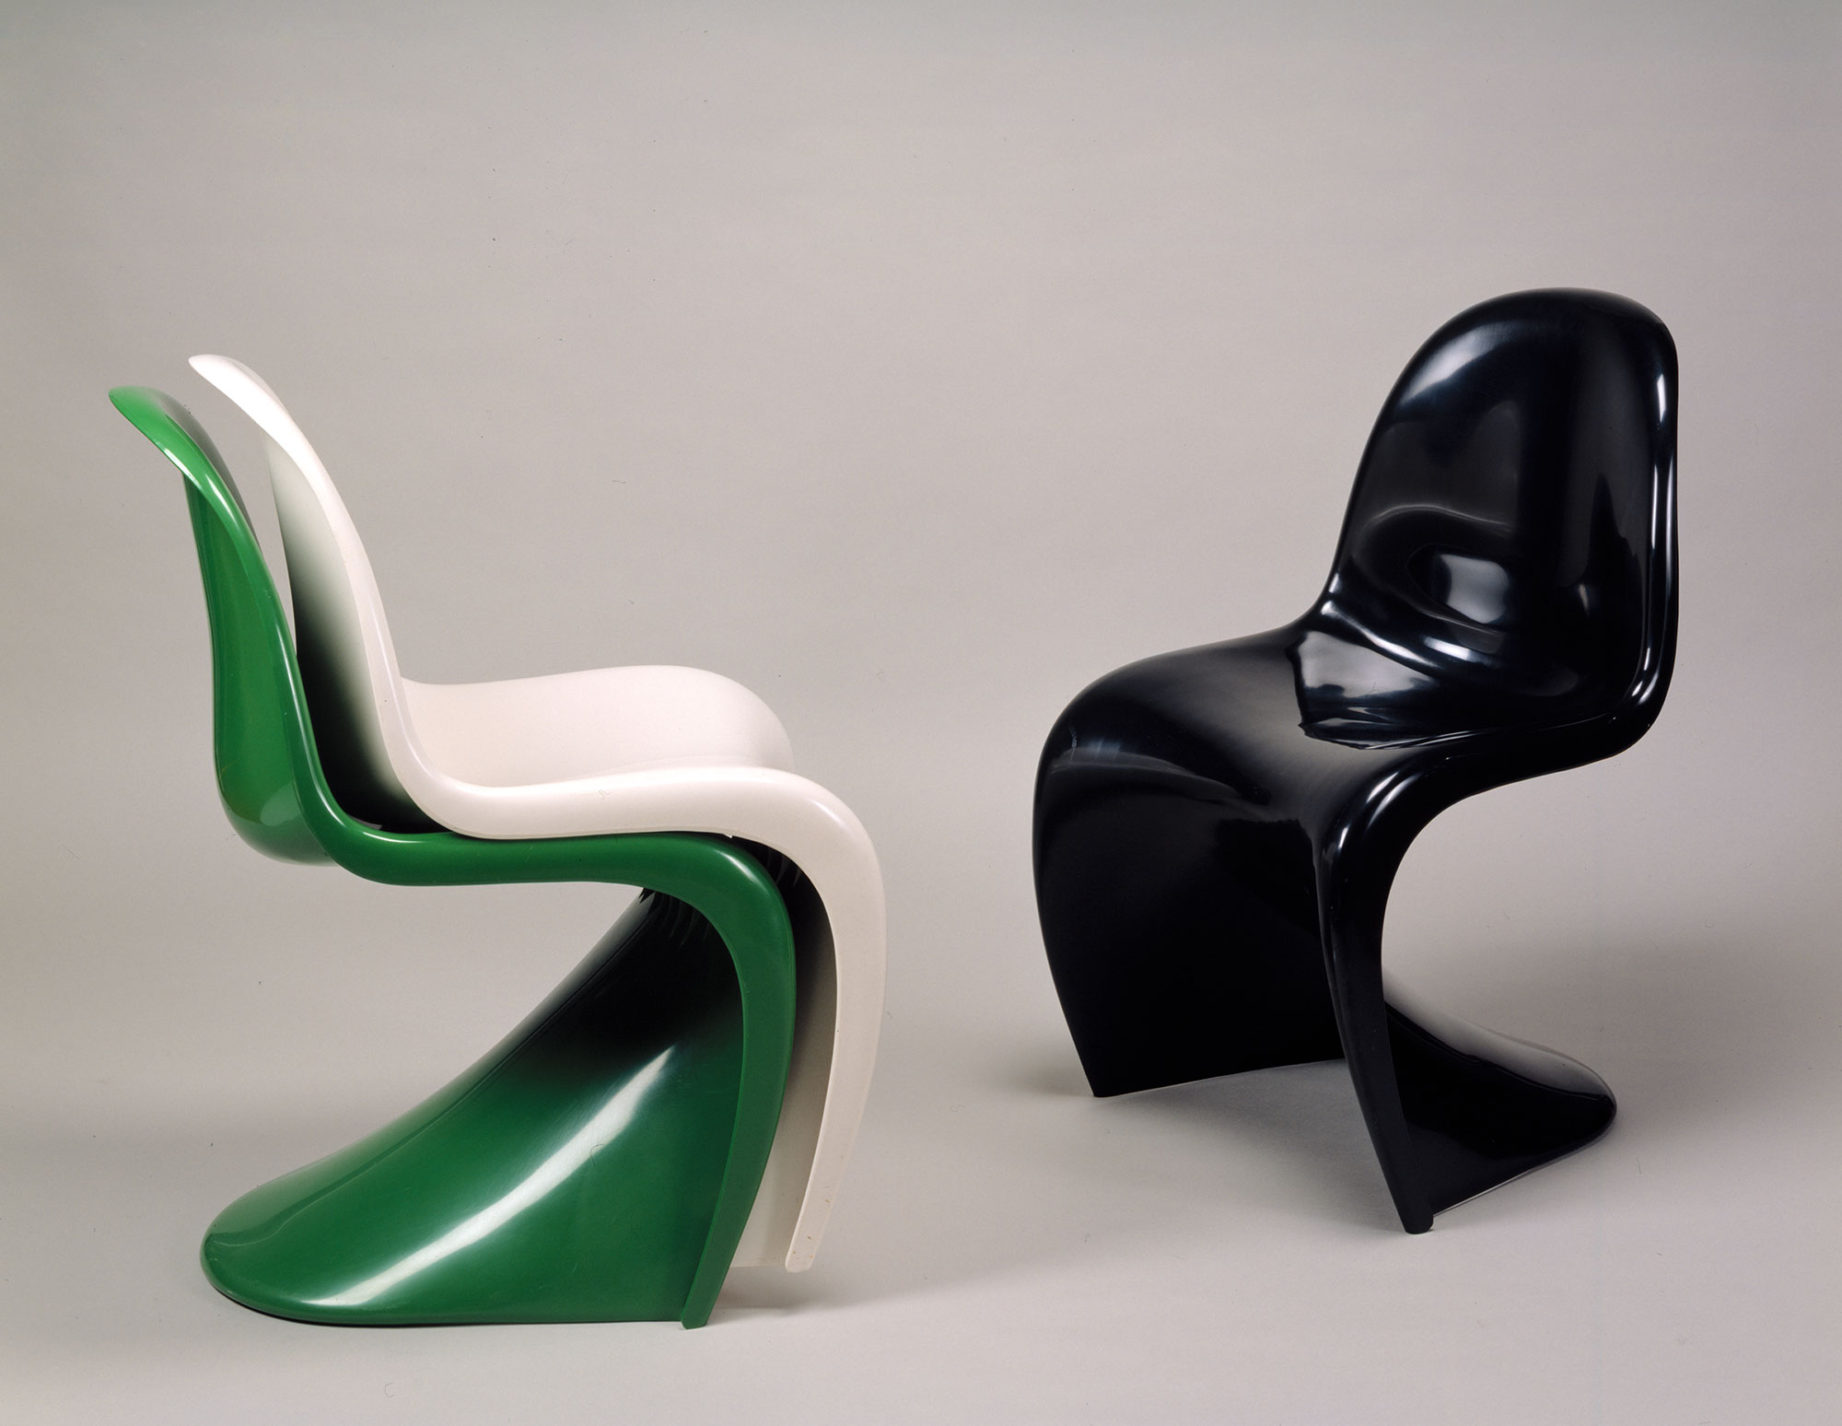 Three curvy plastic stacking chairs in different colors: black, white, and green.